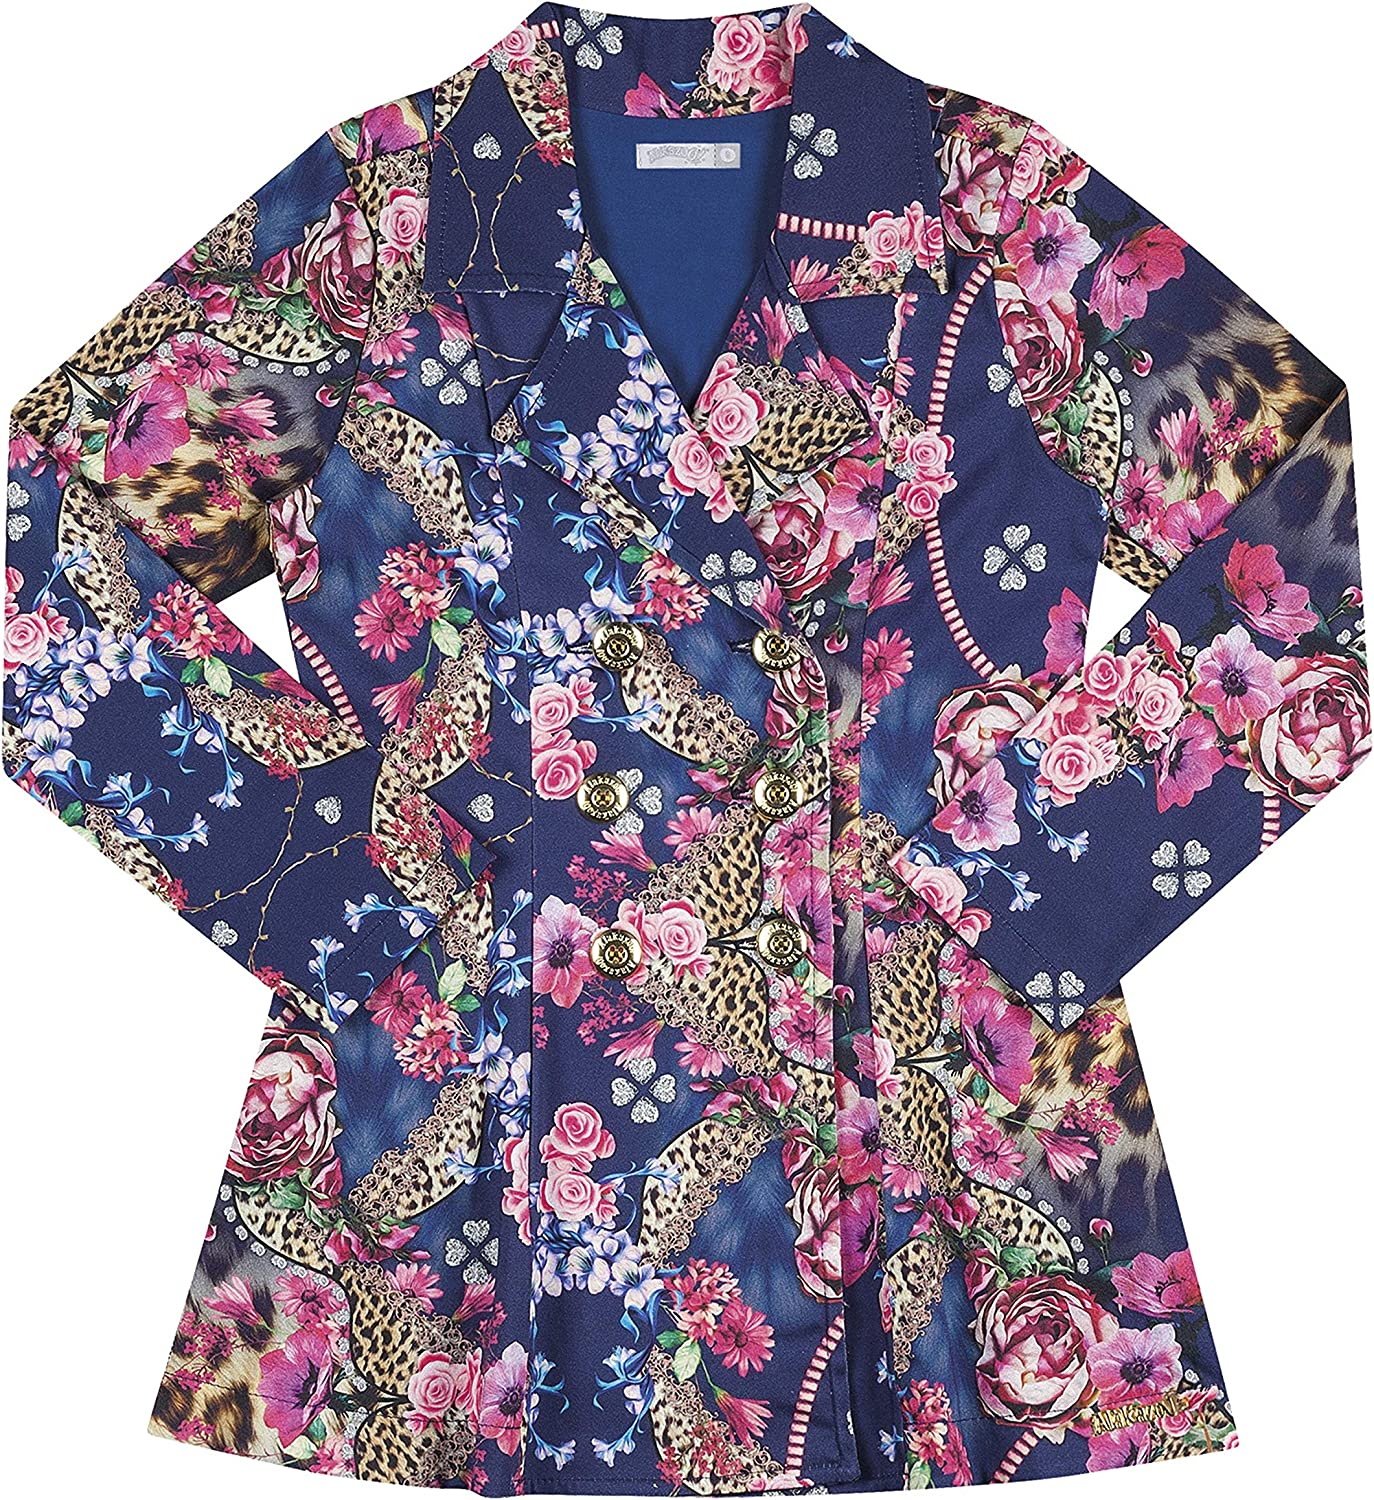 FROM BRAZIL Floral Print Double Breasted Overcoat KIDKLICK FUN FASHION